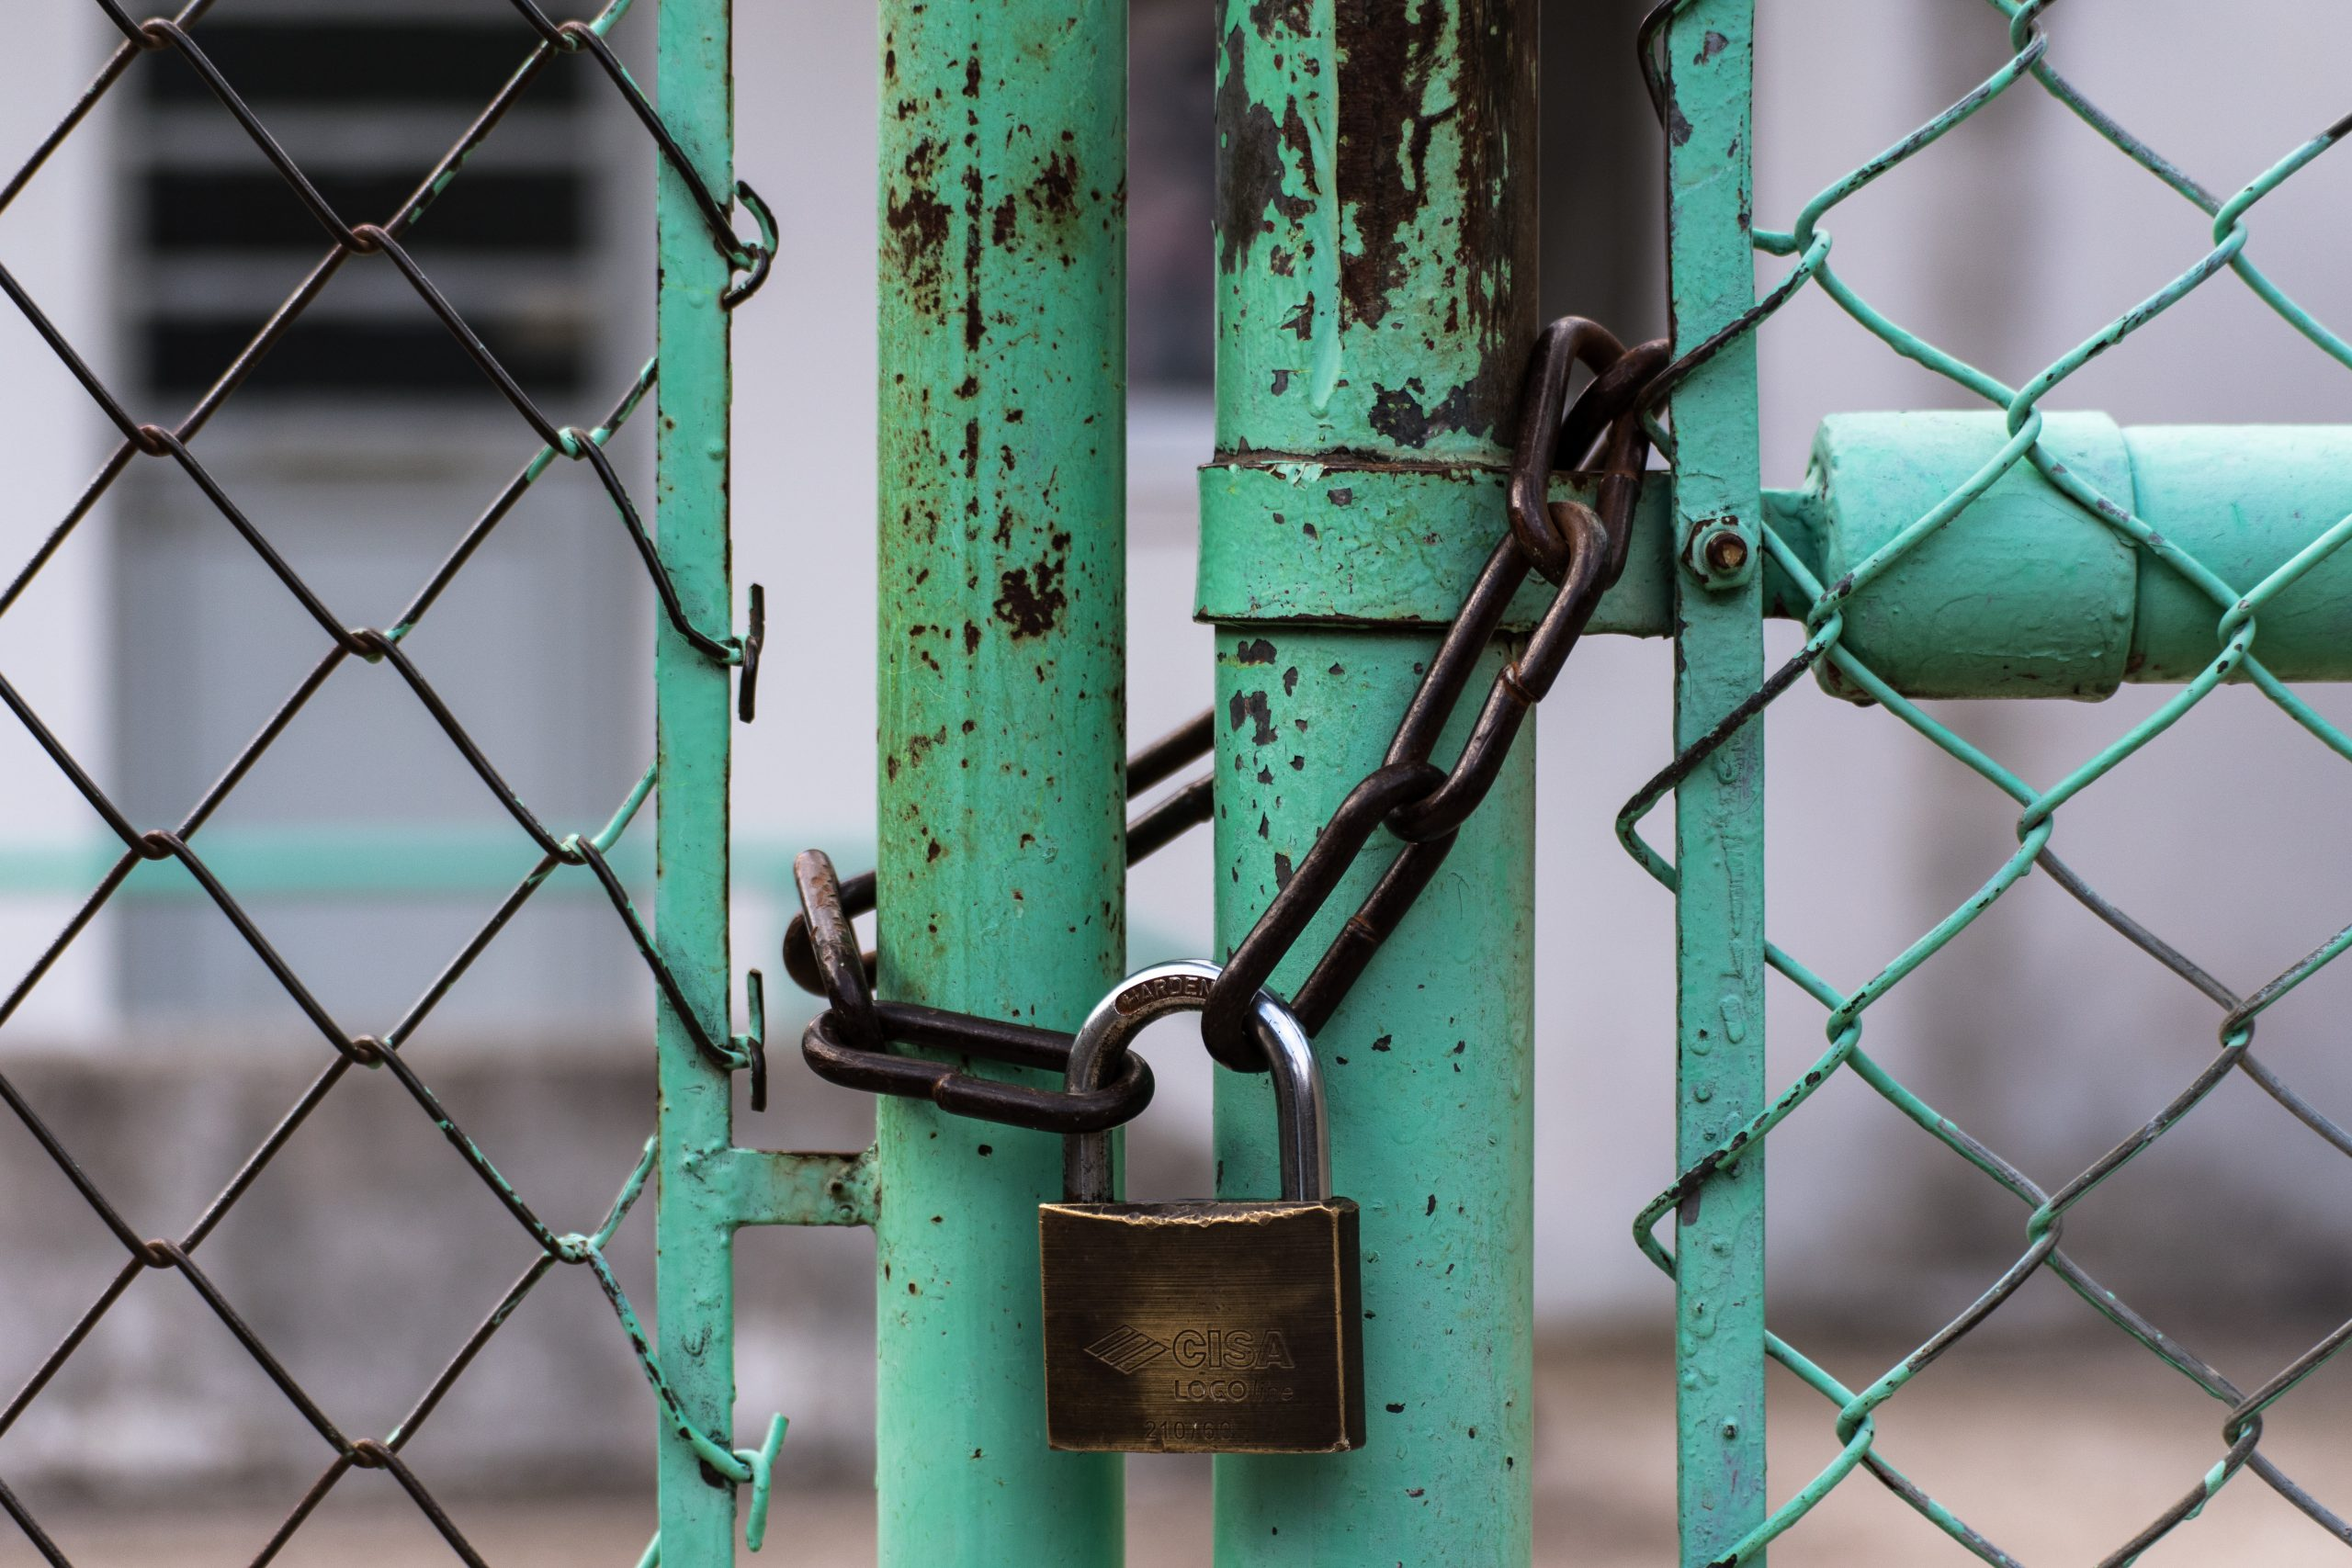 This is a picture of a pad locked green gate for an article called Security Product Competitor Analysis Case Study by Octopus is a Competitive Intelligence Competitor Analysis focused on creating certainty